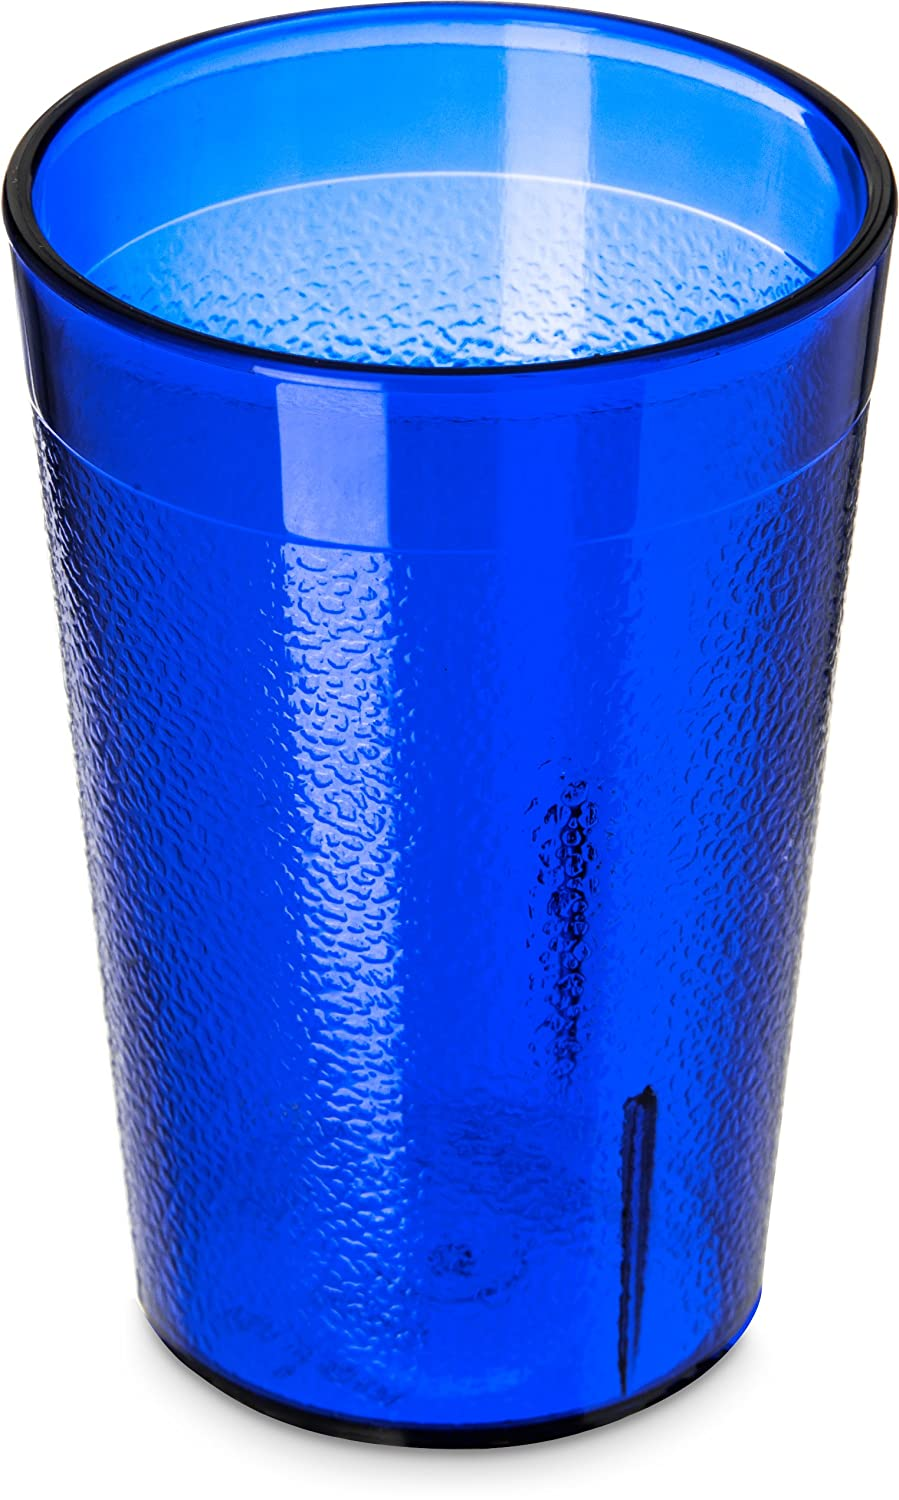 Carlisle 5526-8147 BPA Free Plastic Stackable Tumbler, 8 oz., Royal Blue (Pack of 6)